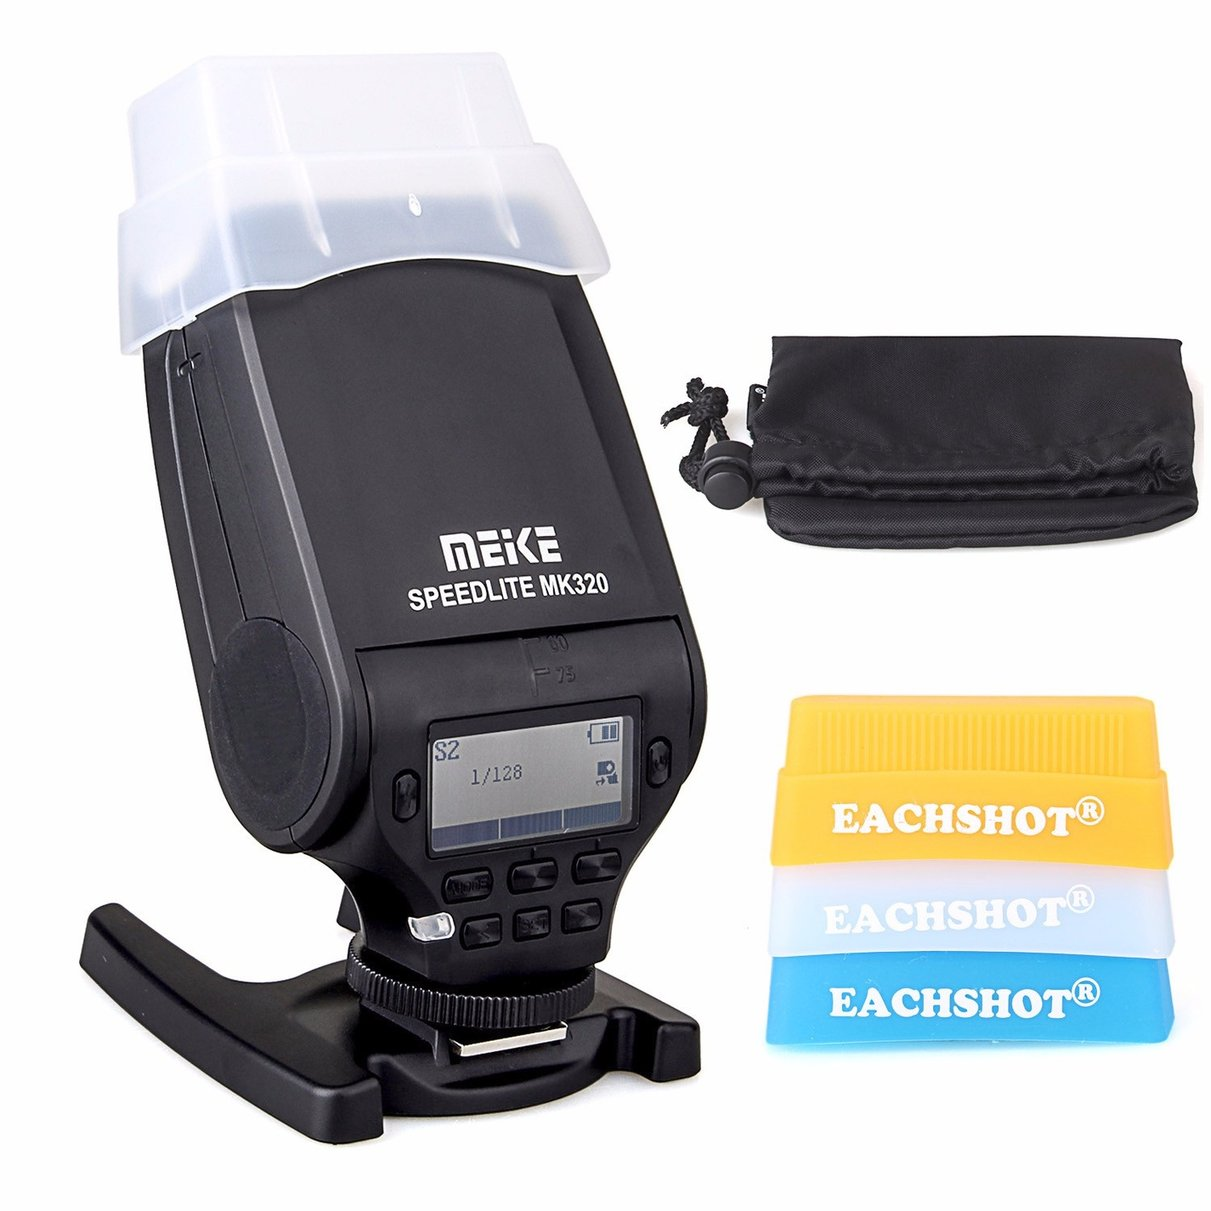 MEIKE MK-320 for Panasonic TTL Flash Speedlite for Panasonic Lumix DMC GF7 GM5 GH4 GM1 GX7 G6 GF6 GH3 G5 GF5 GX1 GF3 G3 mini flash light meike mk320 mk 320 mk320 c gn32 ettl speedlite for can 60d 7d 6d 70d dslr